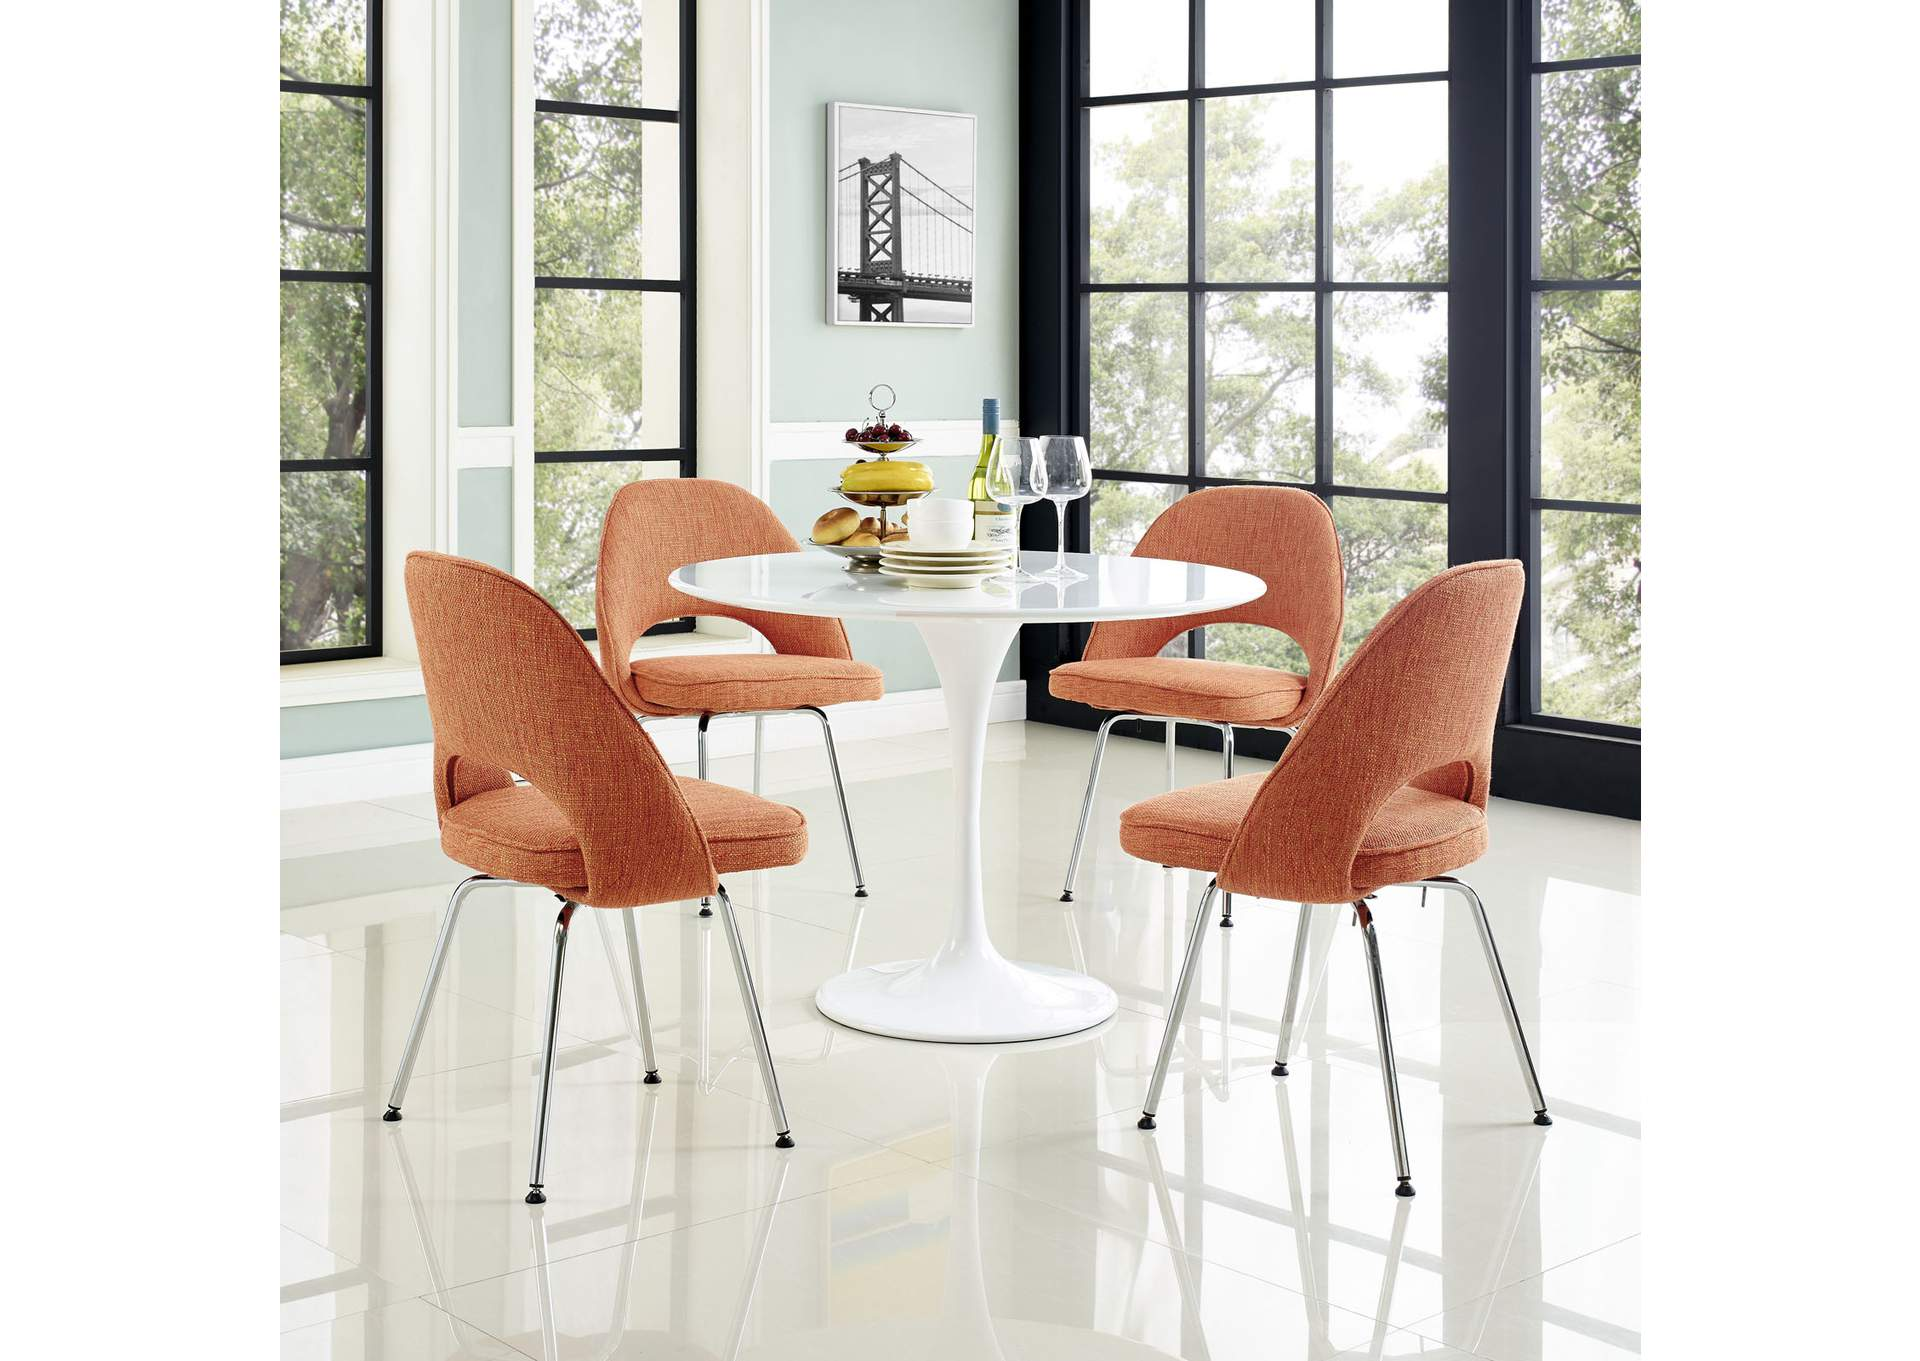 Cordelia Orange Dining Chairs [Set of 4],Modway